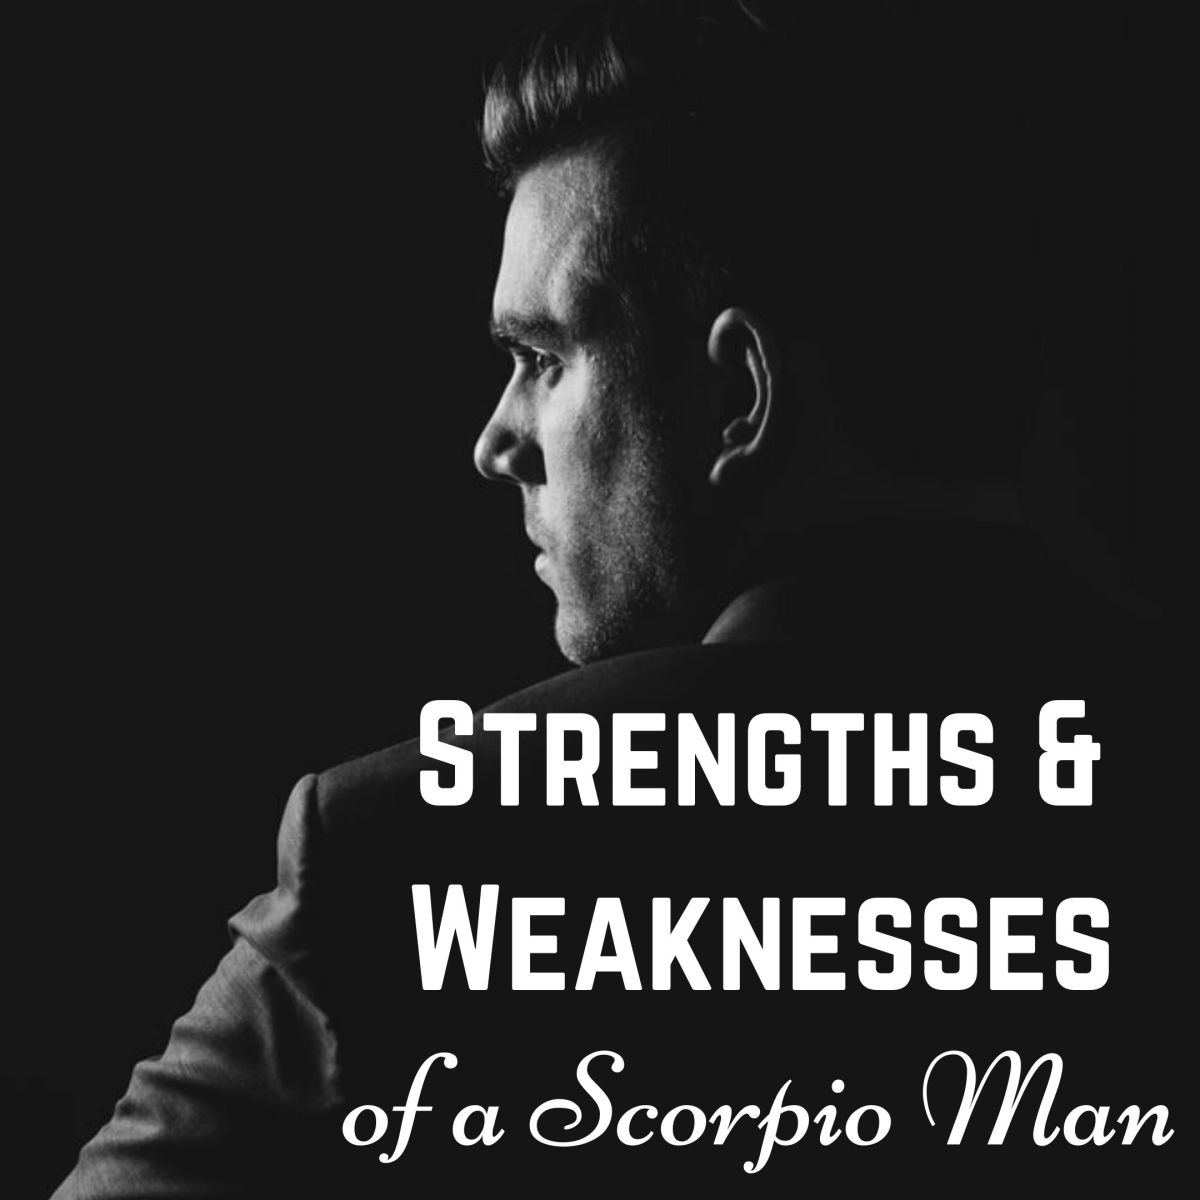 Scorpio men are known for their intensity, mystery, and charm.